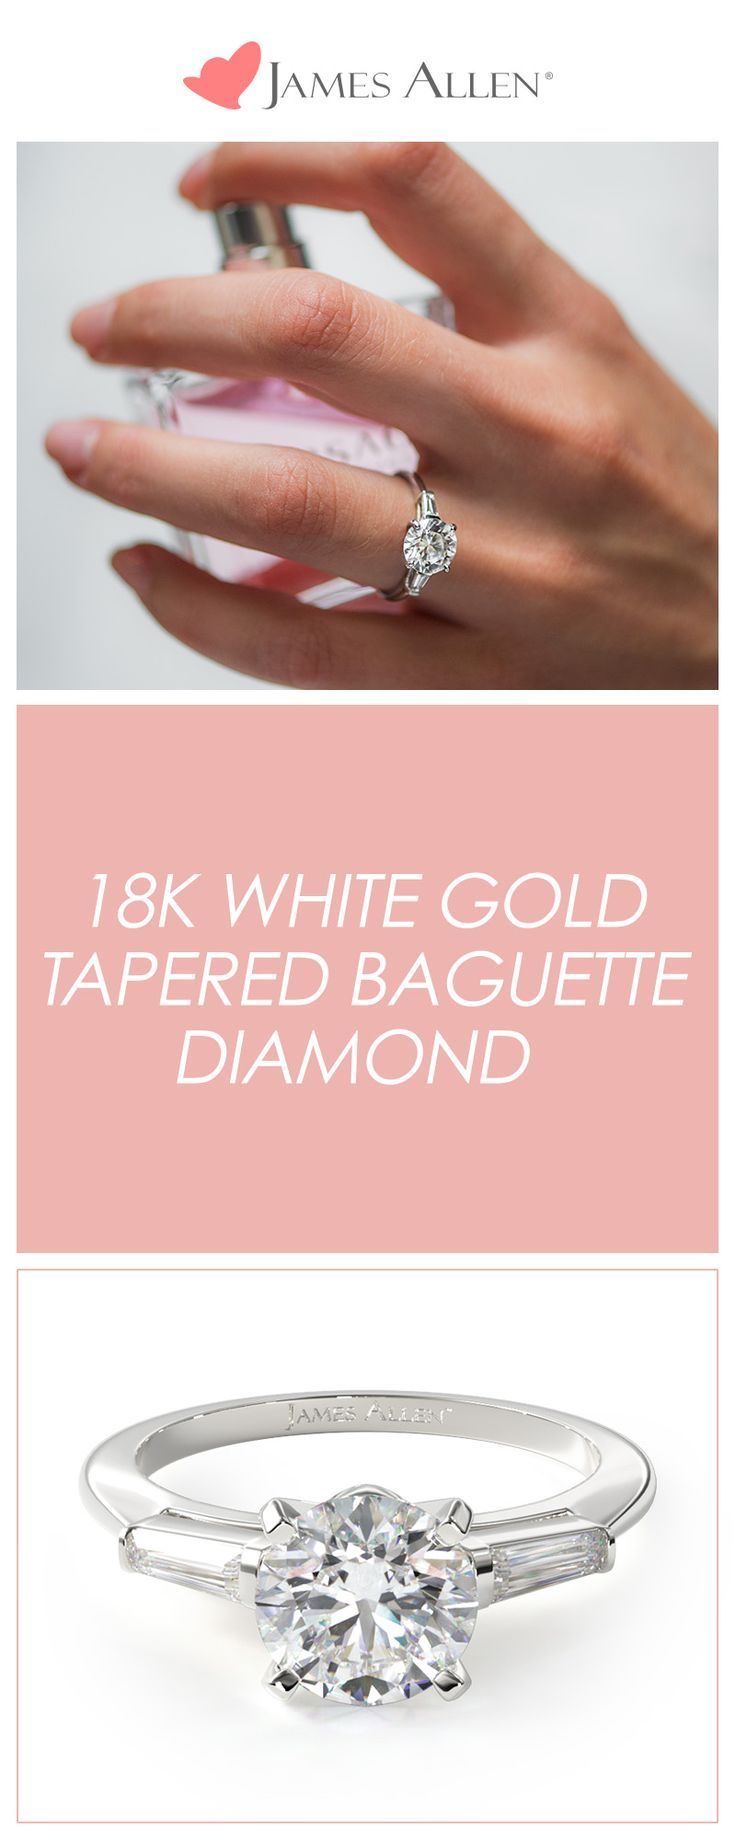 This classic 18K White Gold Tapered Baguette Diamond Engagement Ring ...